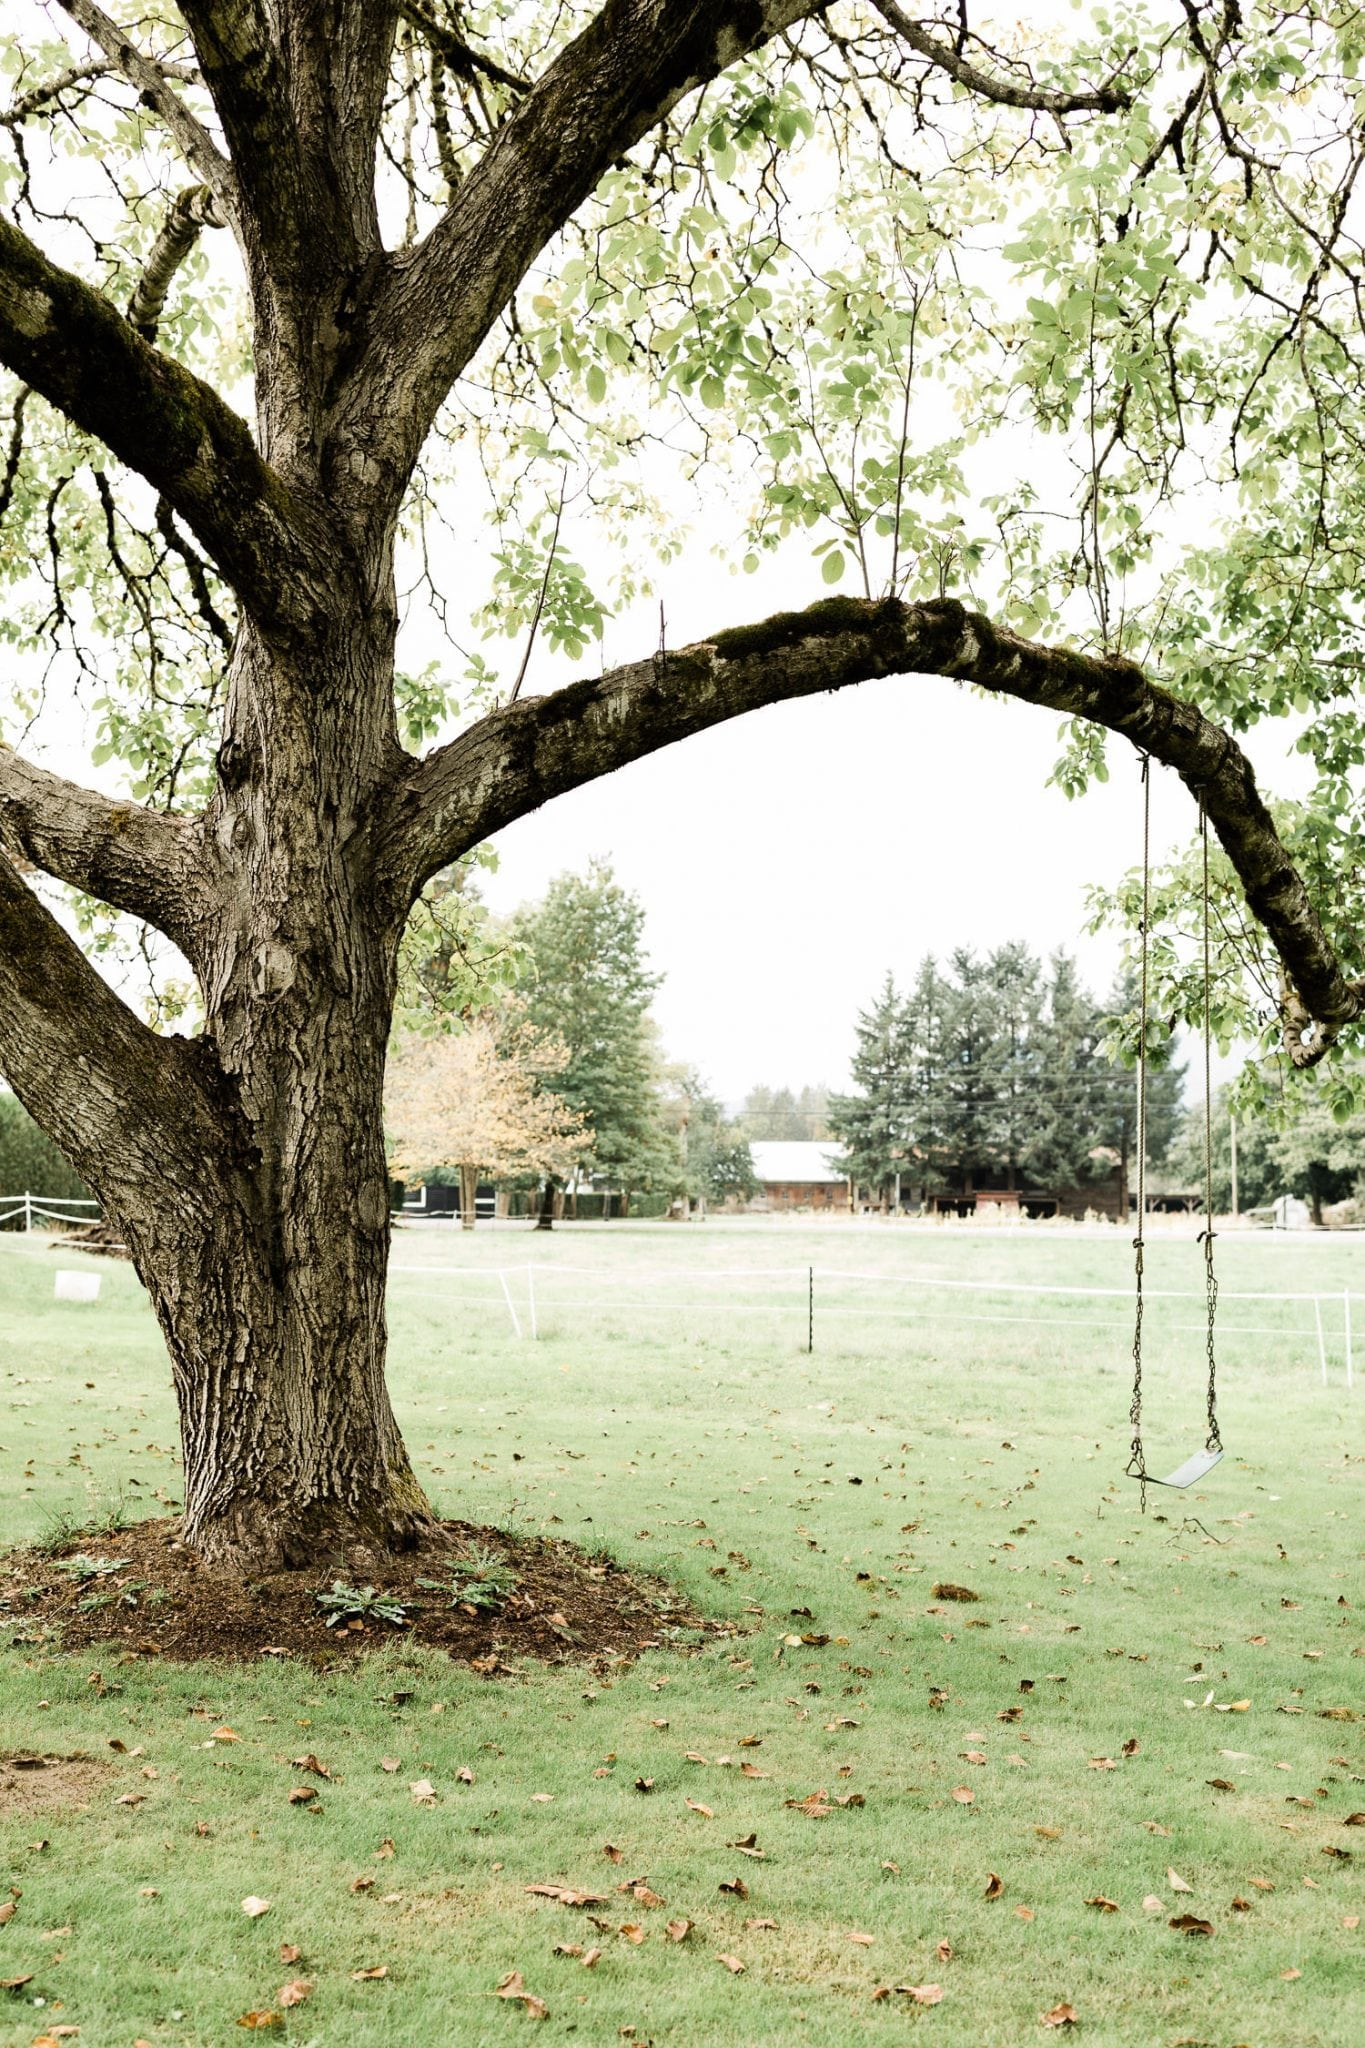 Swings on the tree | Vancouver wedding photographer